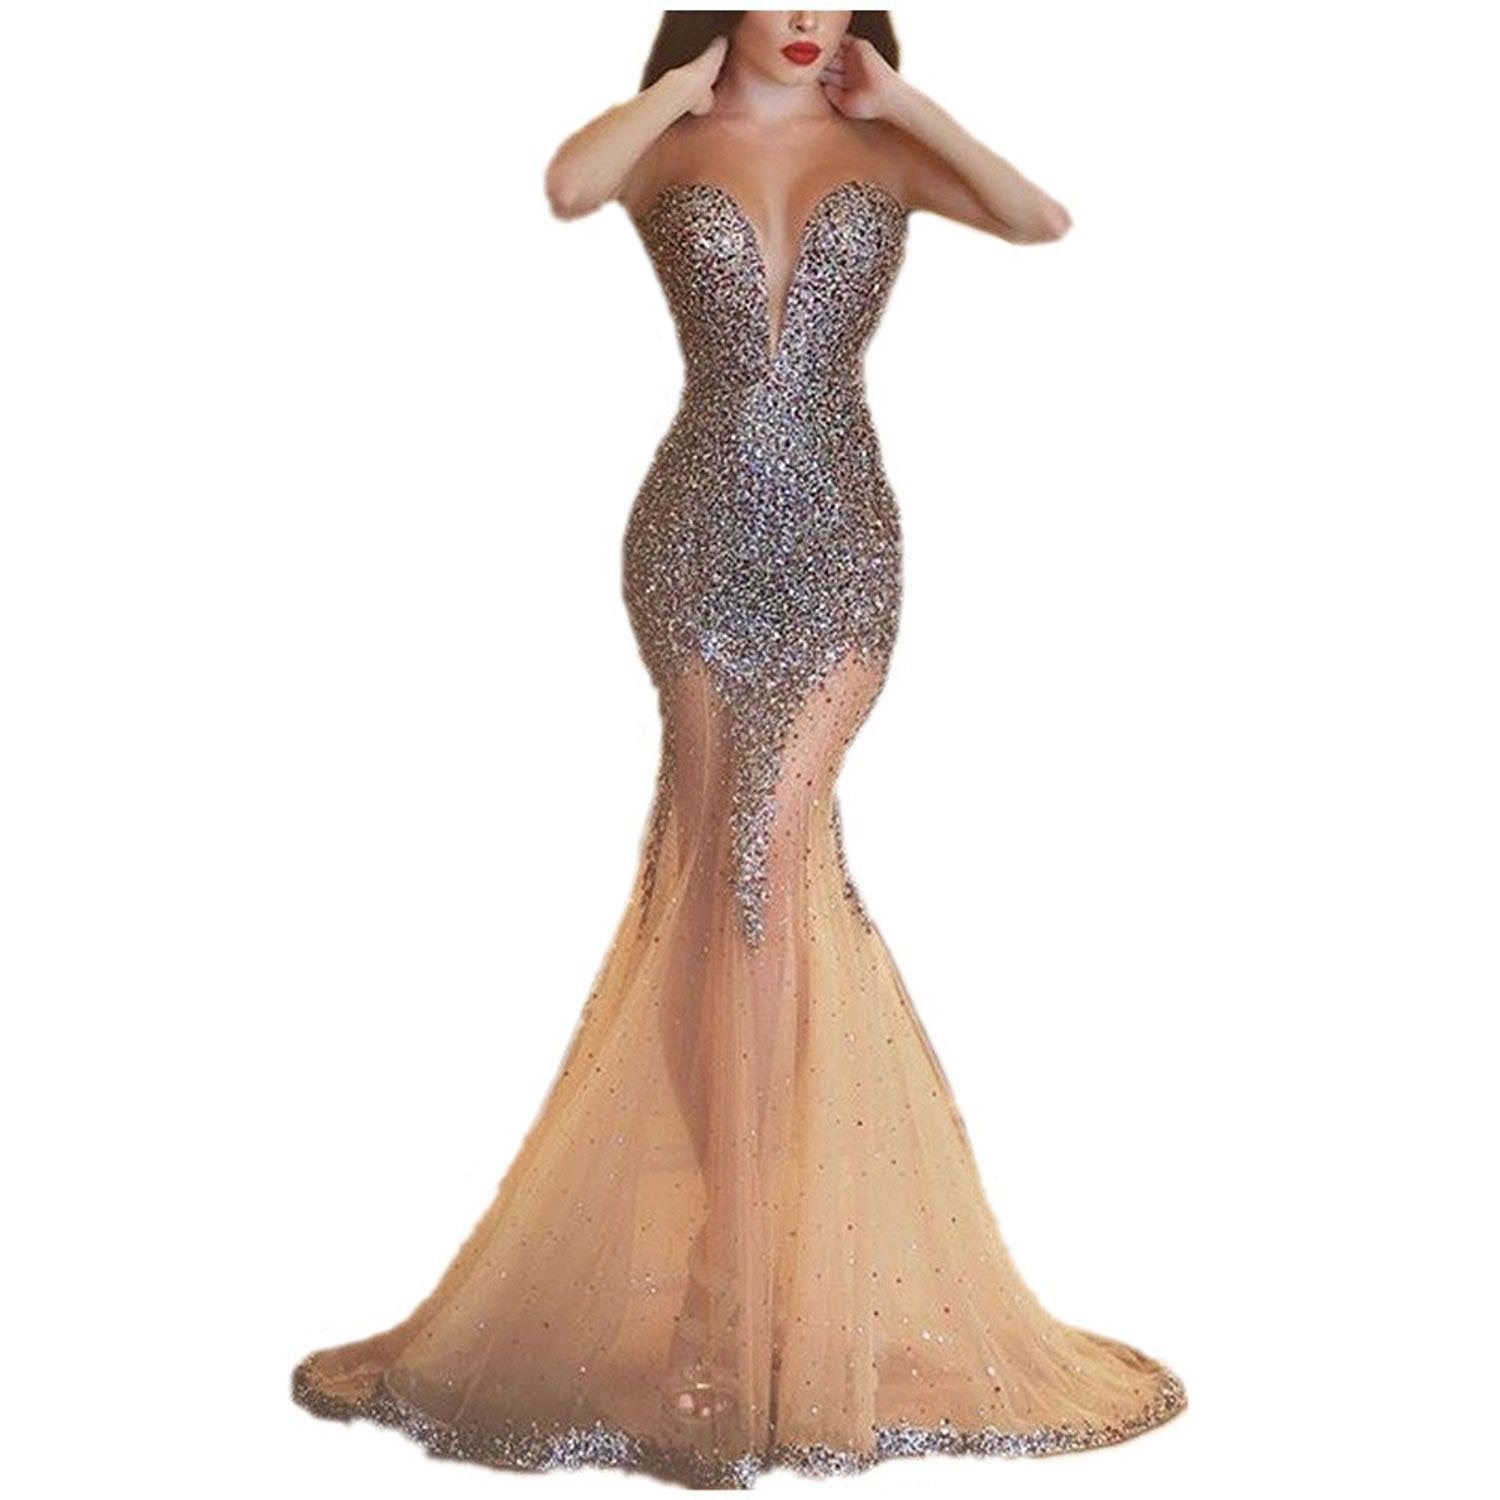 Uryouthstyle 2017 Beling Beling Mermaid See Through Prom Evening Dresses US2 Silver